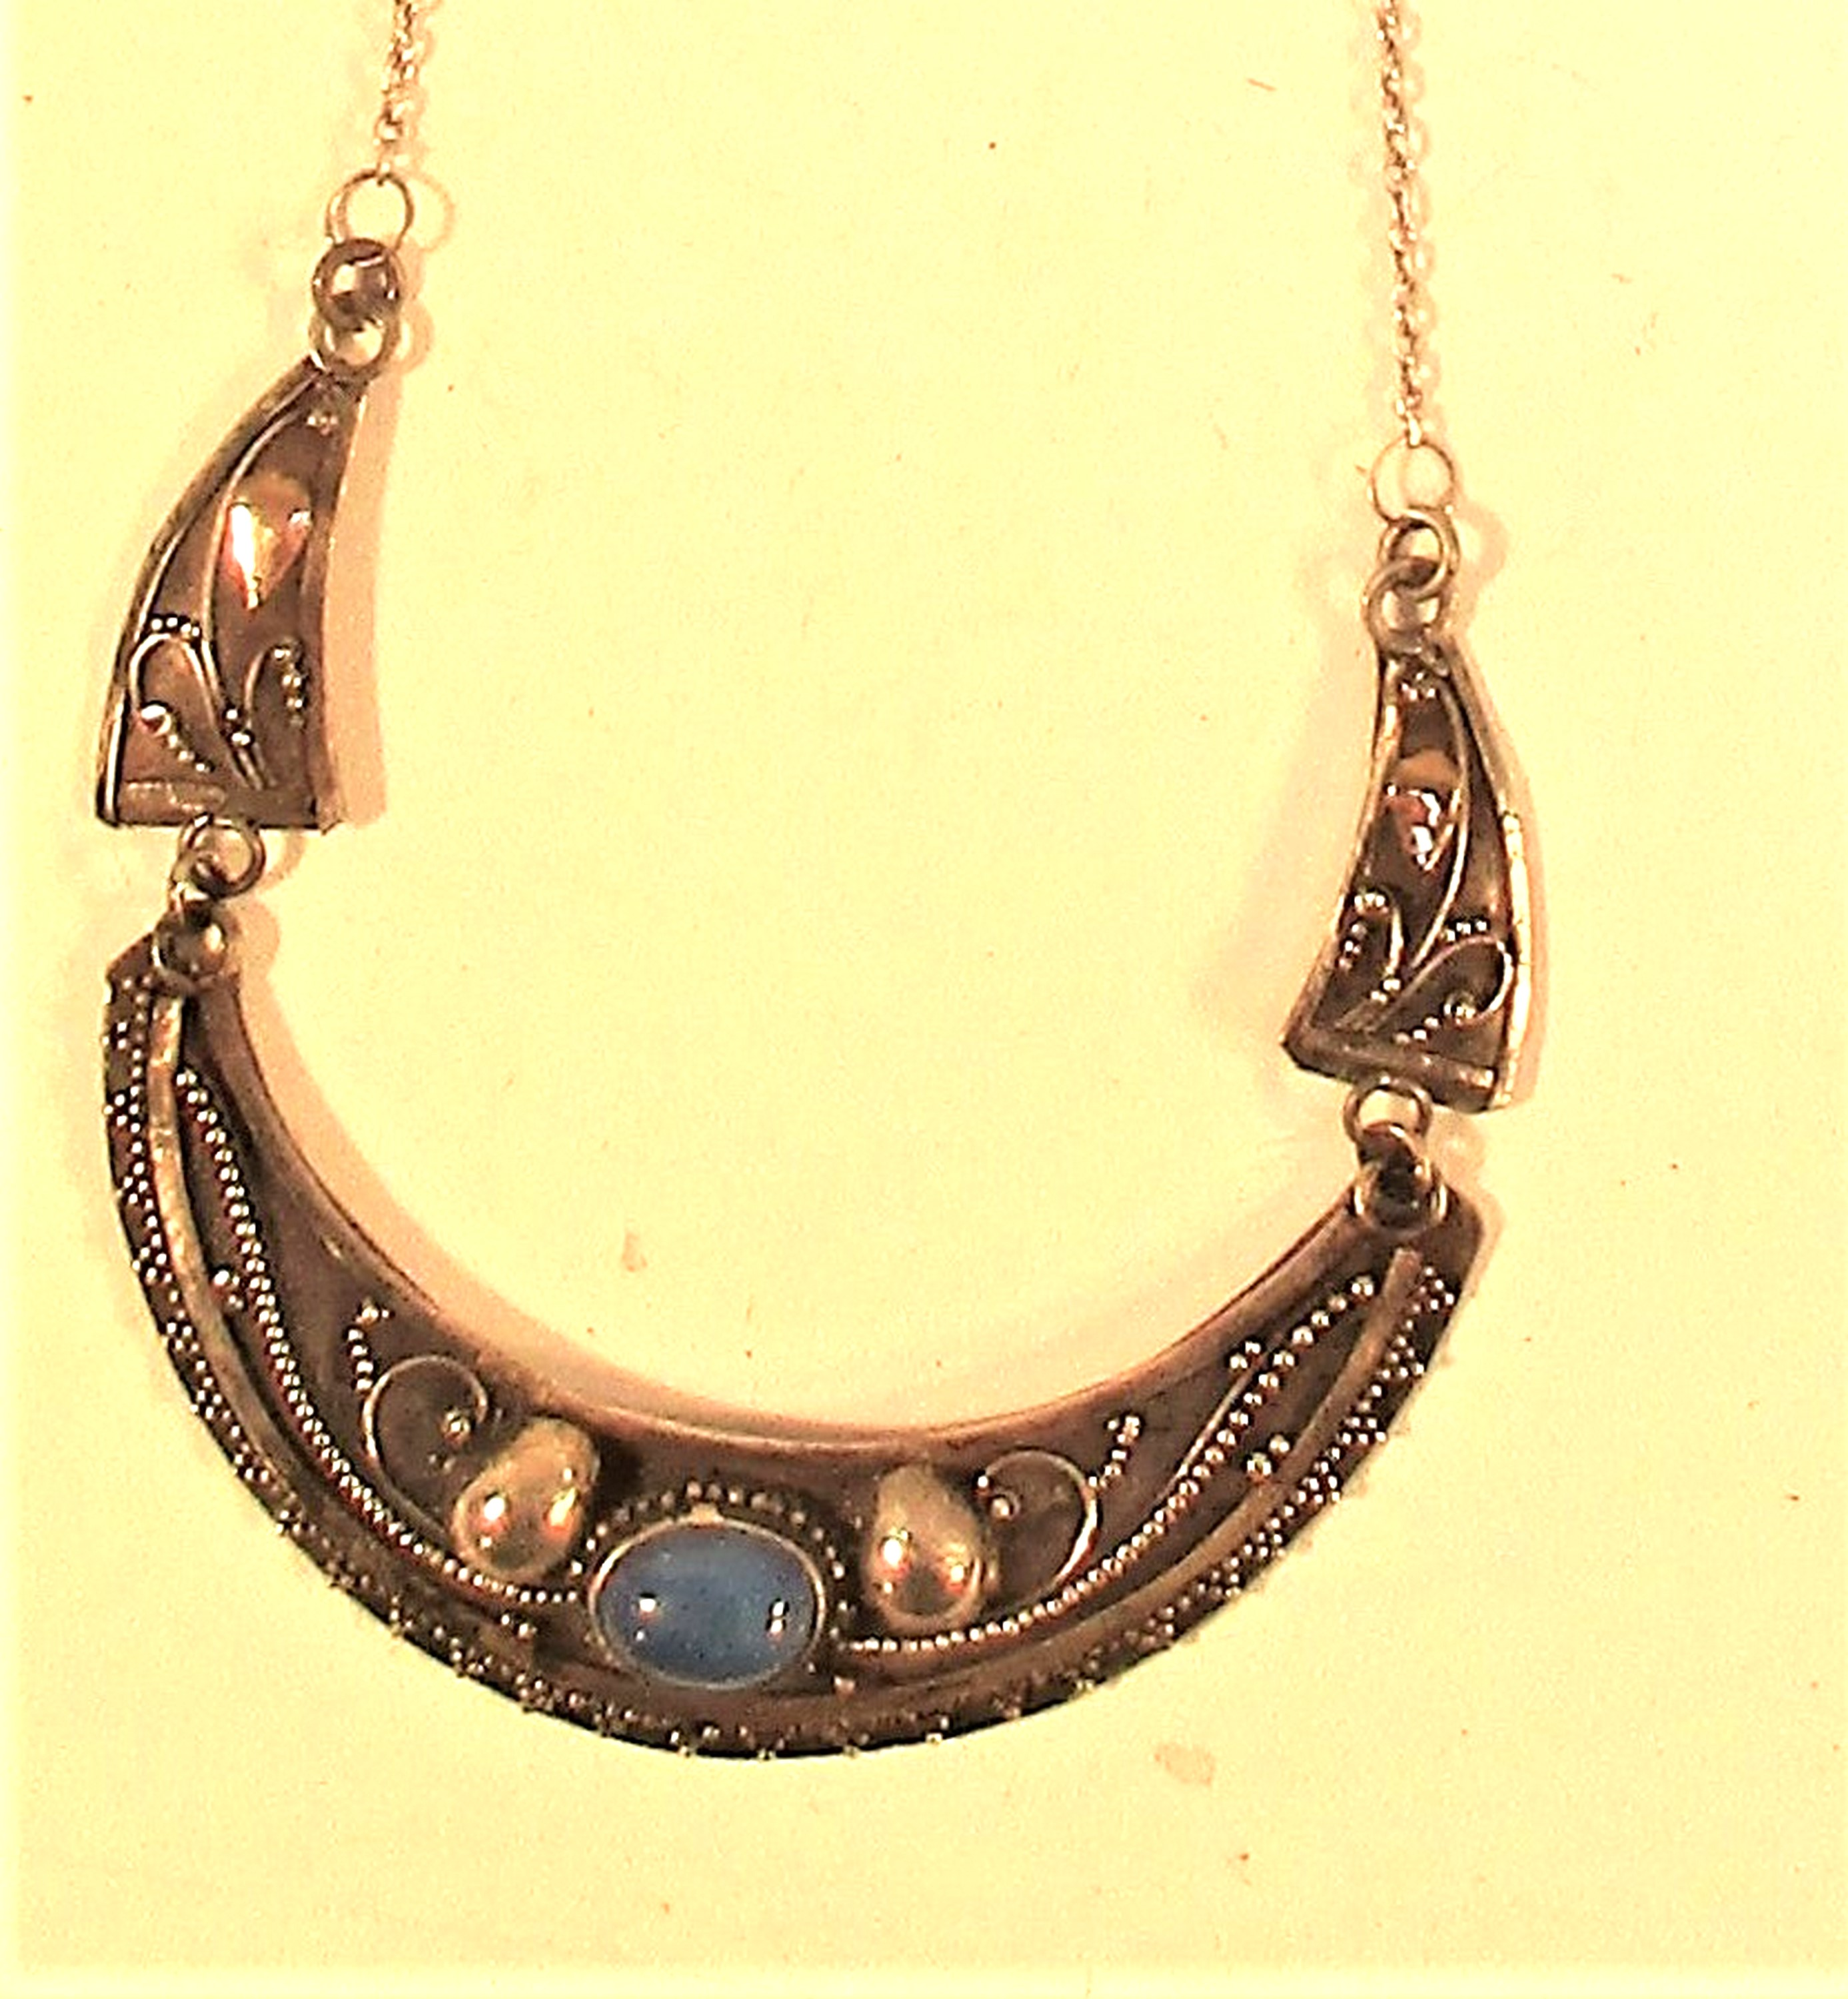 Balinese 925 silver pendant with gold wash and lapis lazuli stone. 24cm. - Image 2 of 2